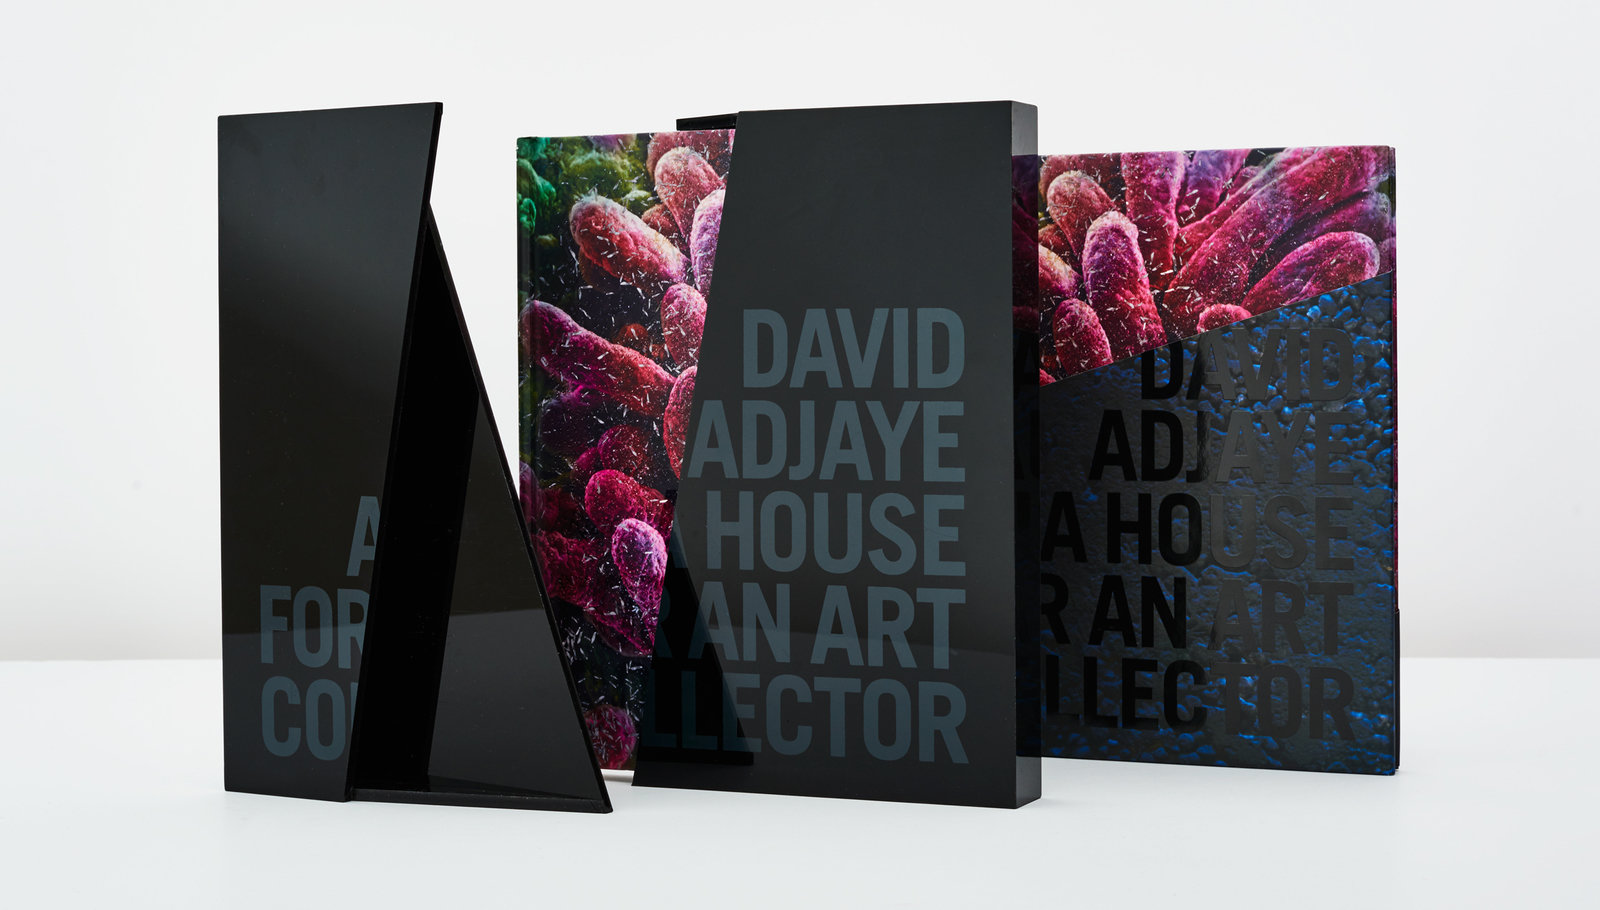 Watson and company david adjaye brochure hero 1600 0x10x2234x1271 q85